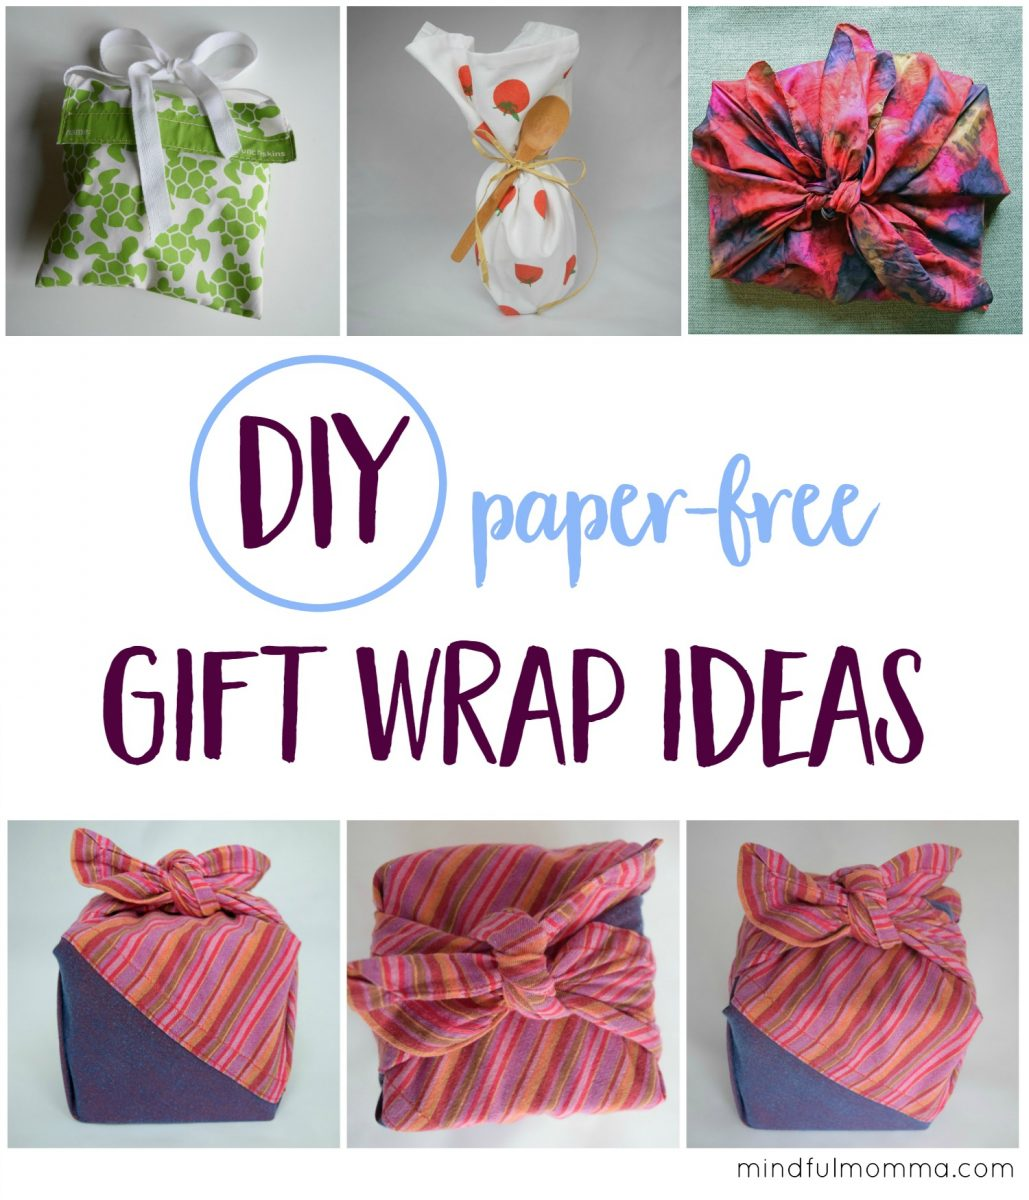 Unique Gift Ideas: Unique Gift Wrapping Ideas That Are Part Of The Gift